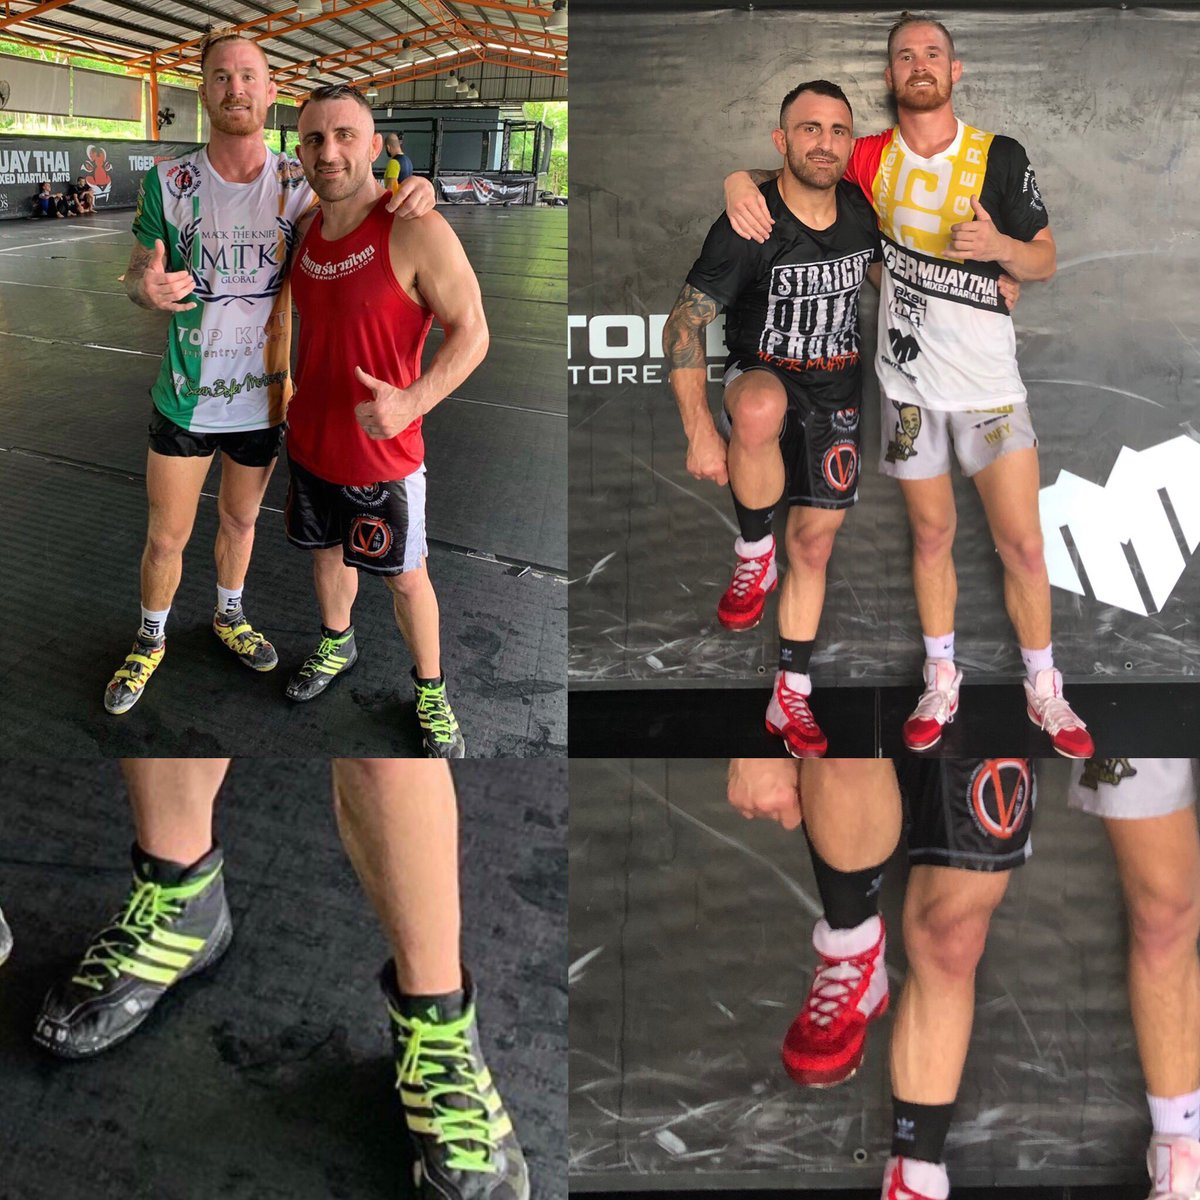 Apparently wearing high socks with wrestling shoes is an unwritten law 🤷♂️ what you think?